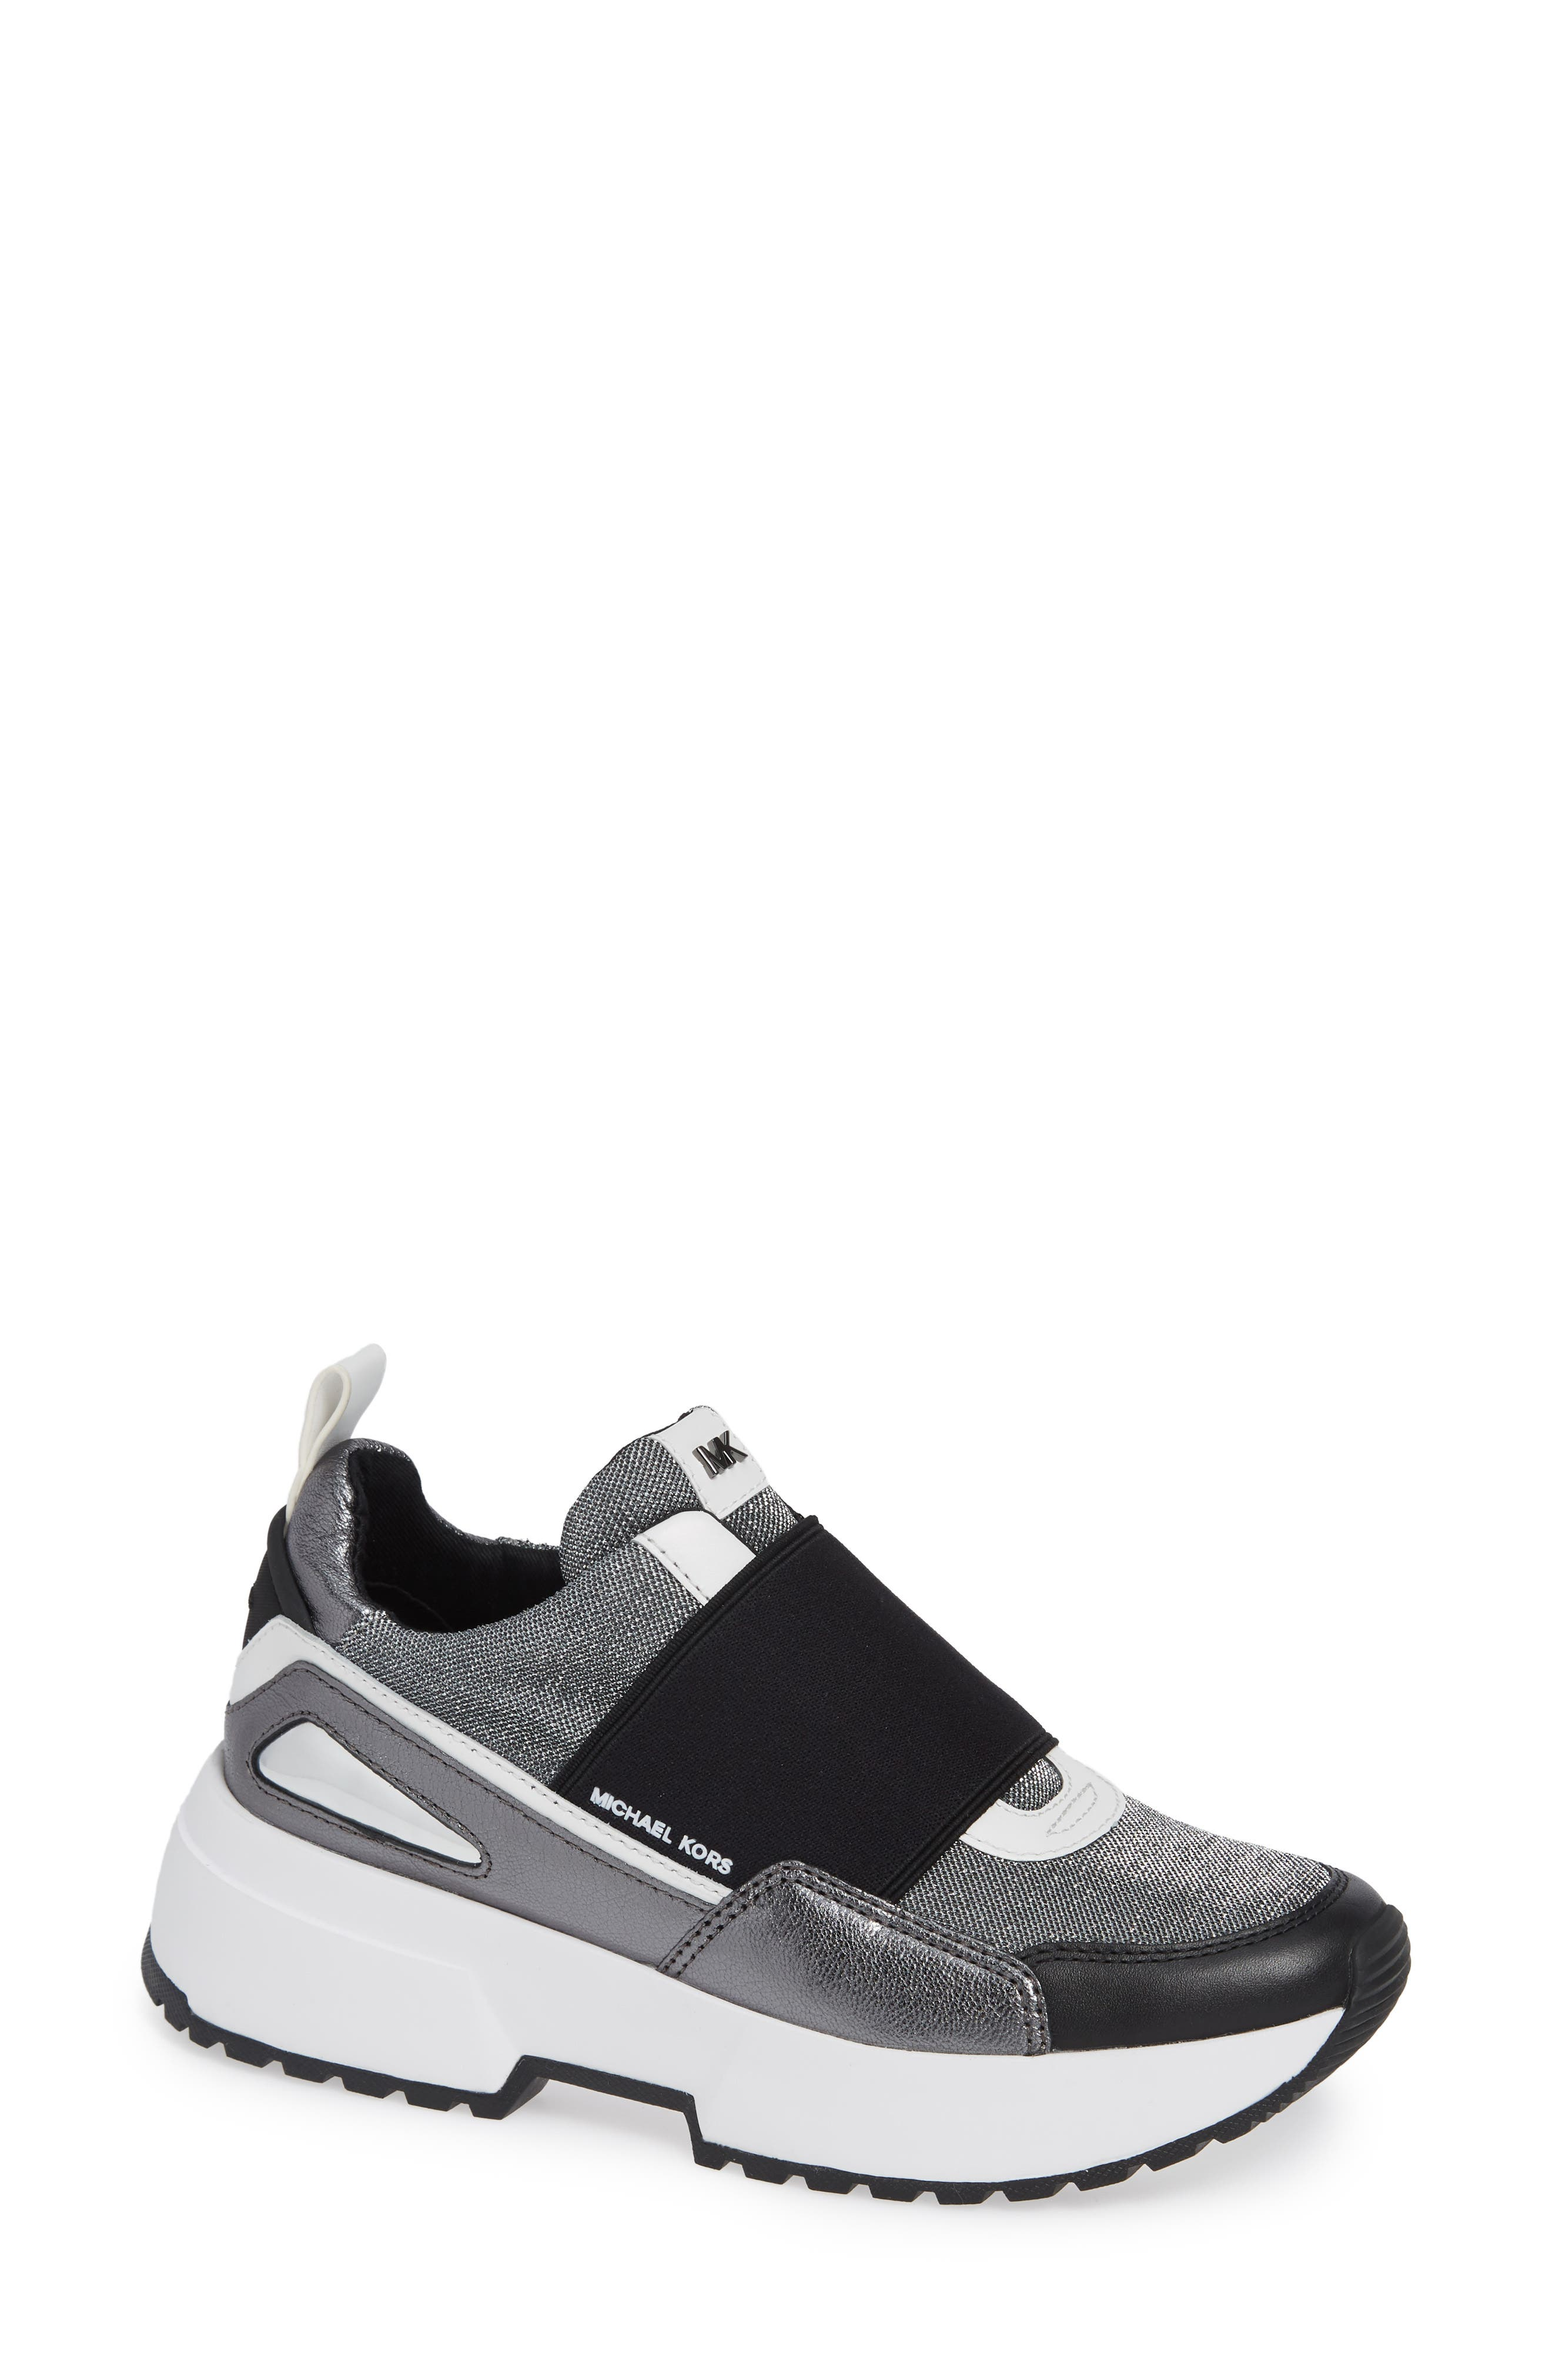 Cosmo Sneaker in Silver Metallic Multi